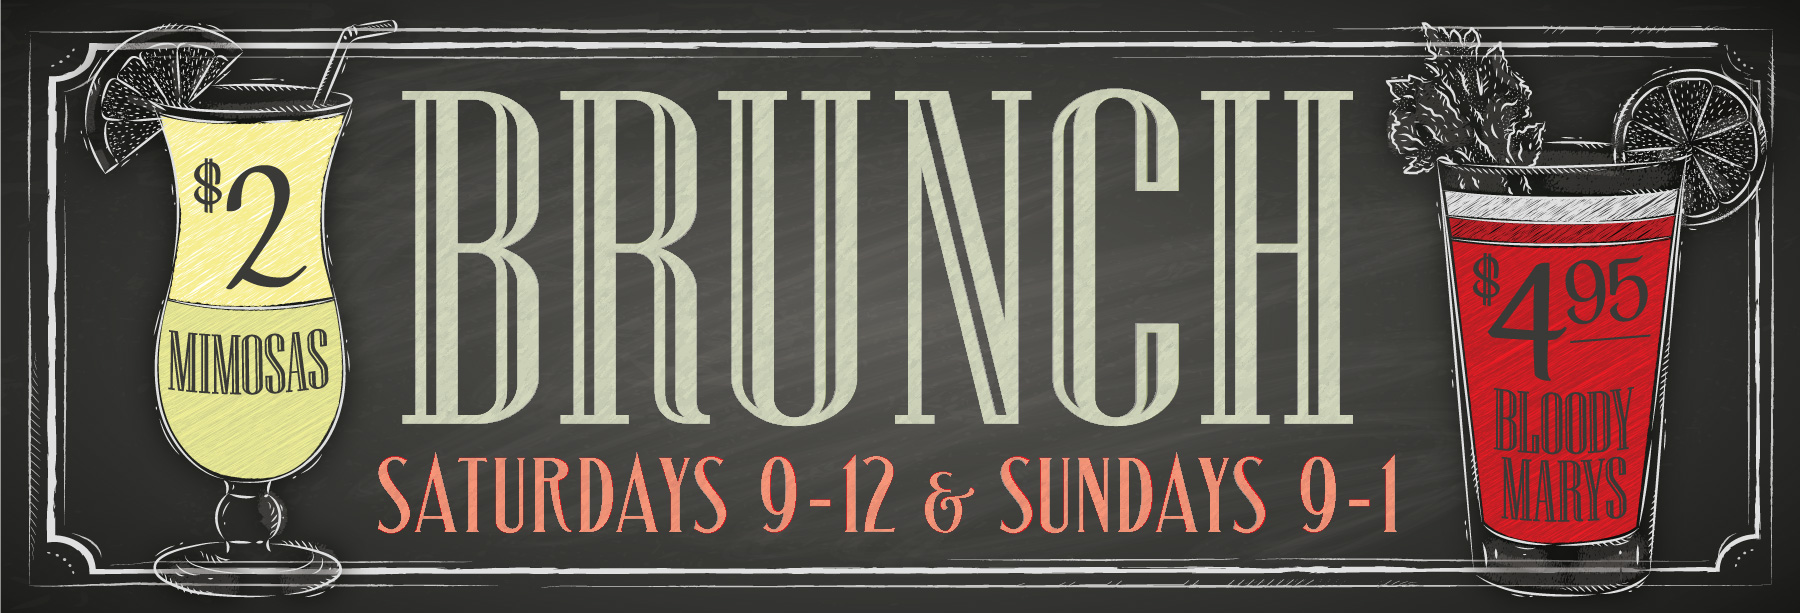 Brunch Banner Ad